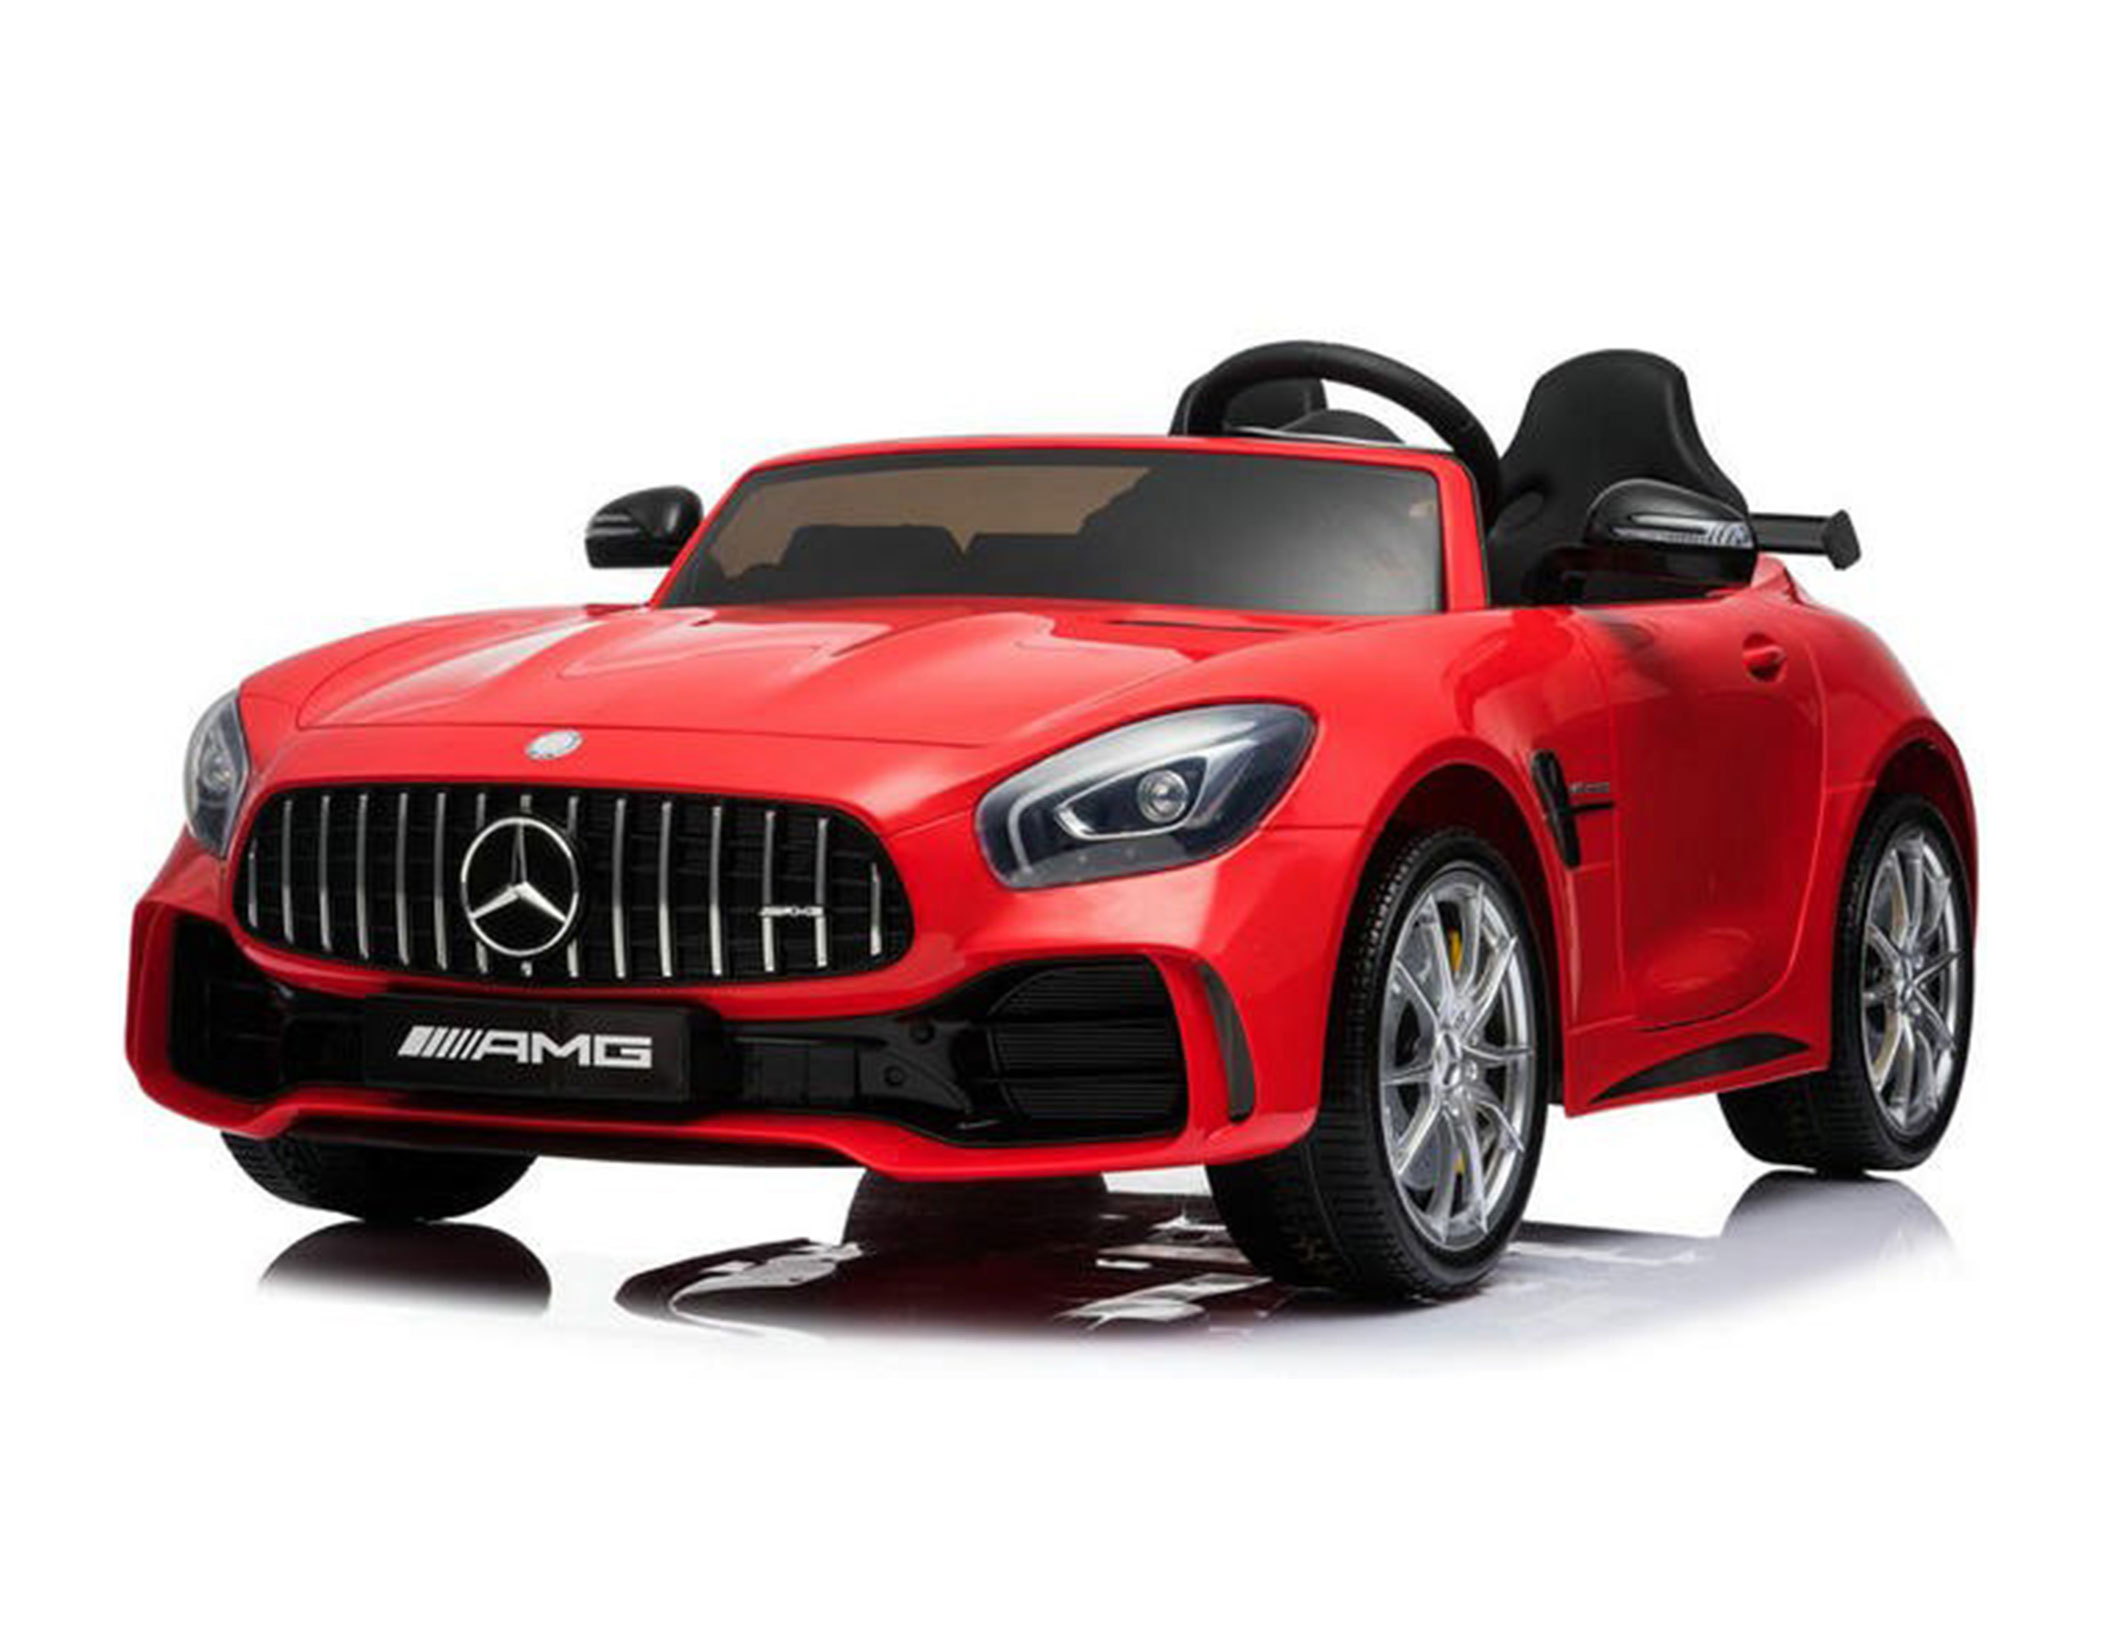 Mercedes Two Seater GTR Licensed Ride On Electric Toy Car